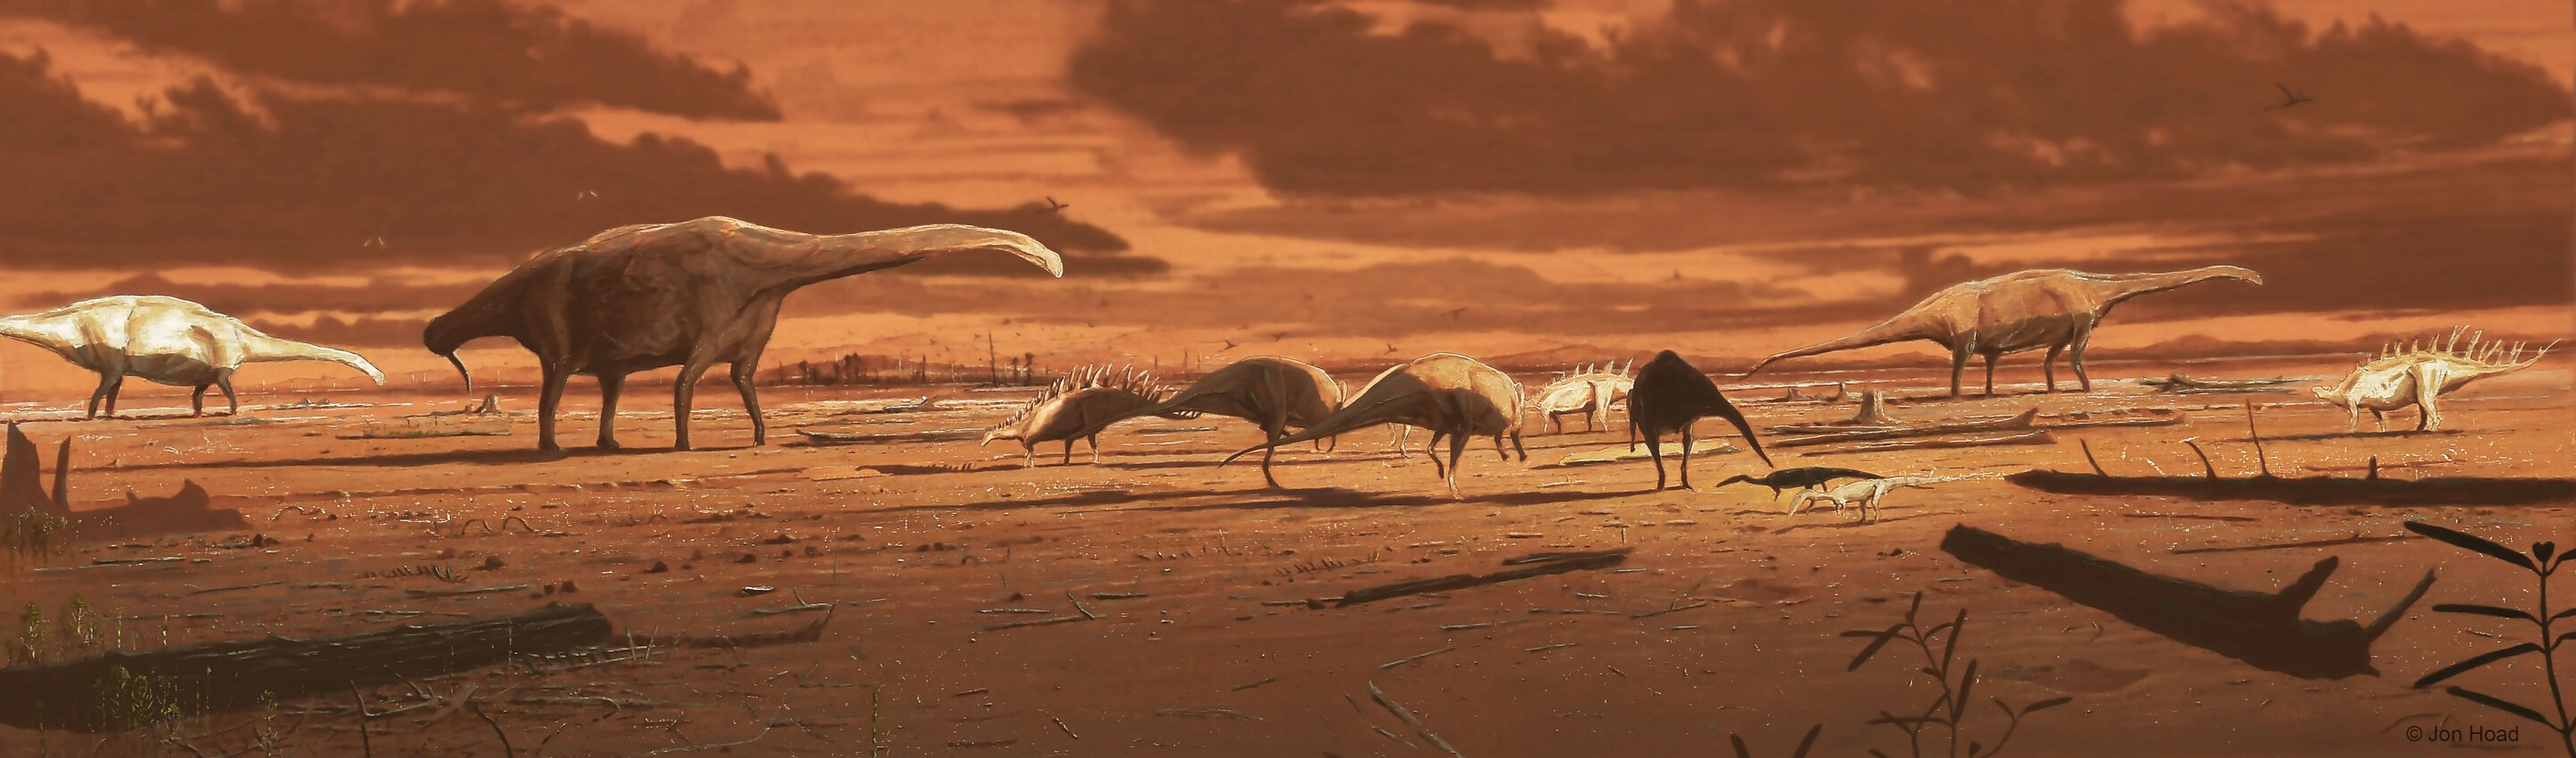 Dinosaur stomping ground in Scotland reveals thriving middle Jurassic ecosystem thumbnail